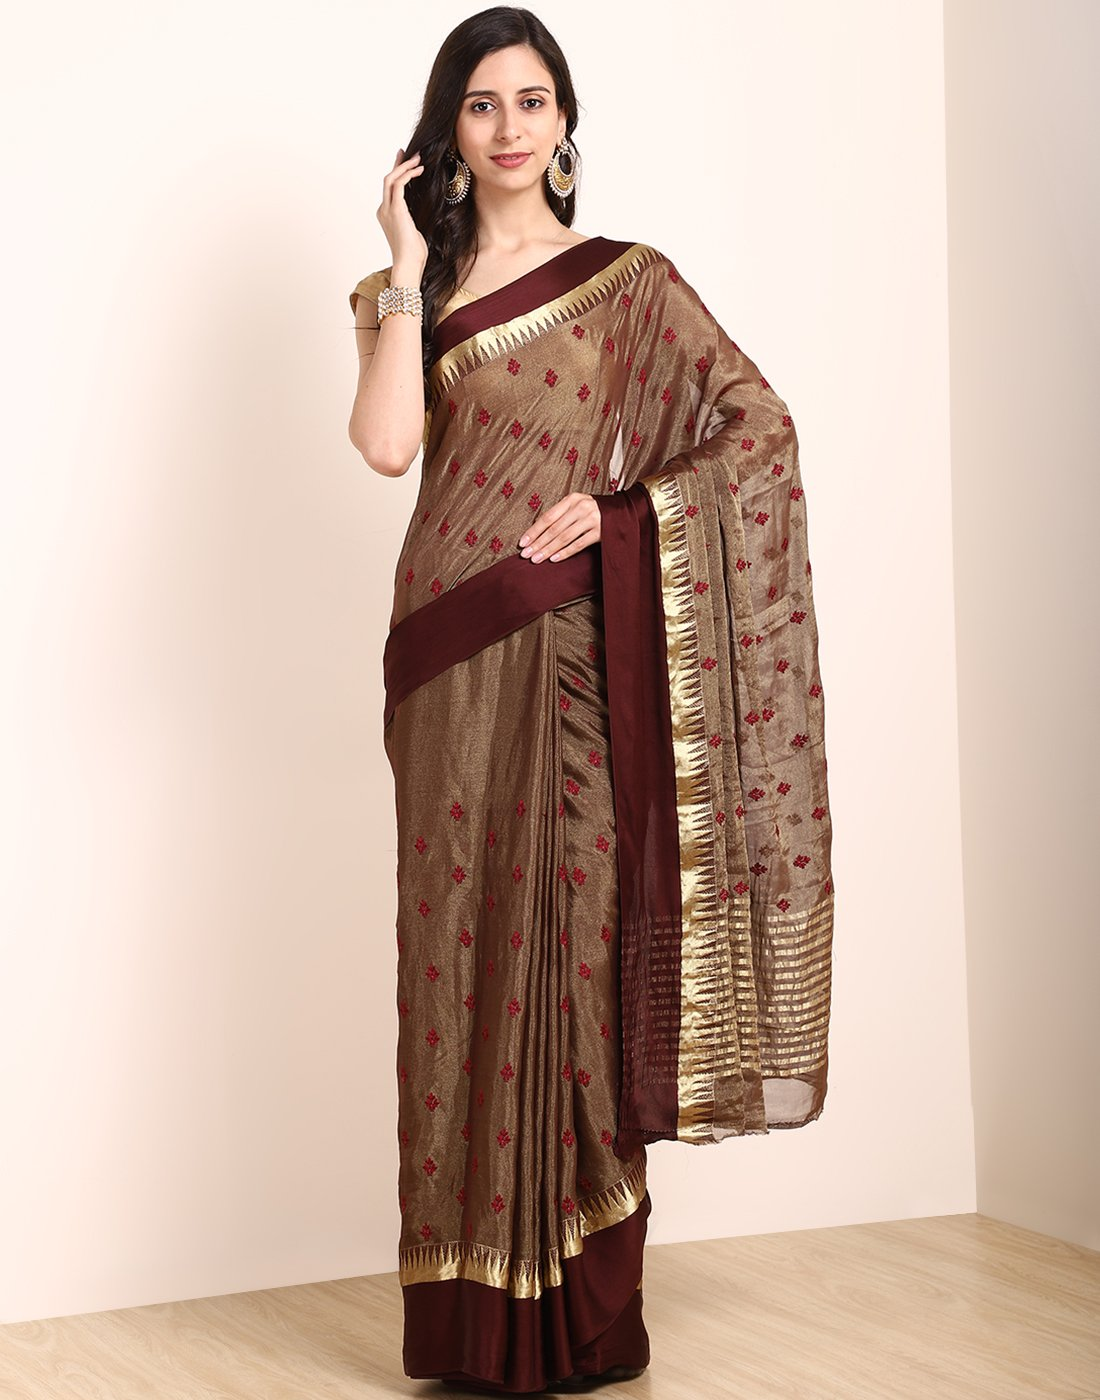 MBZ Meena Bazaar-Brown Chiffon Saree